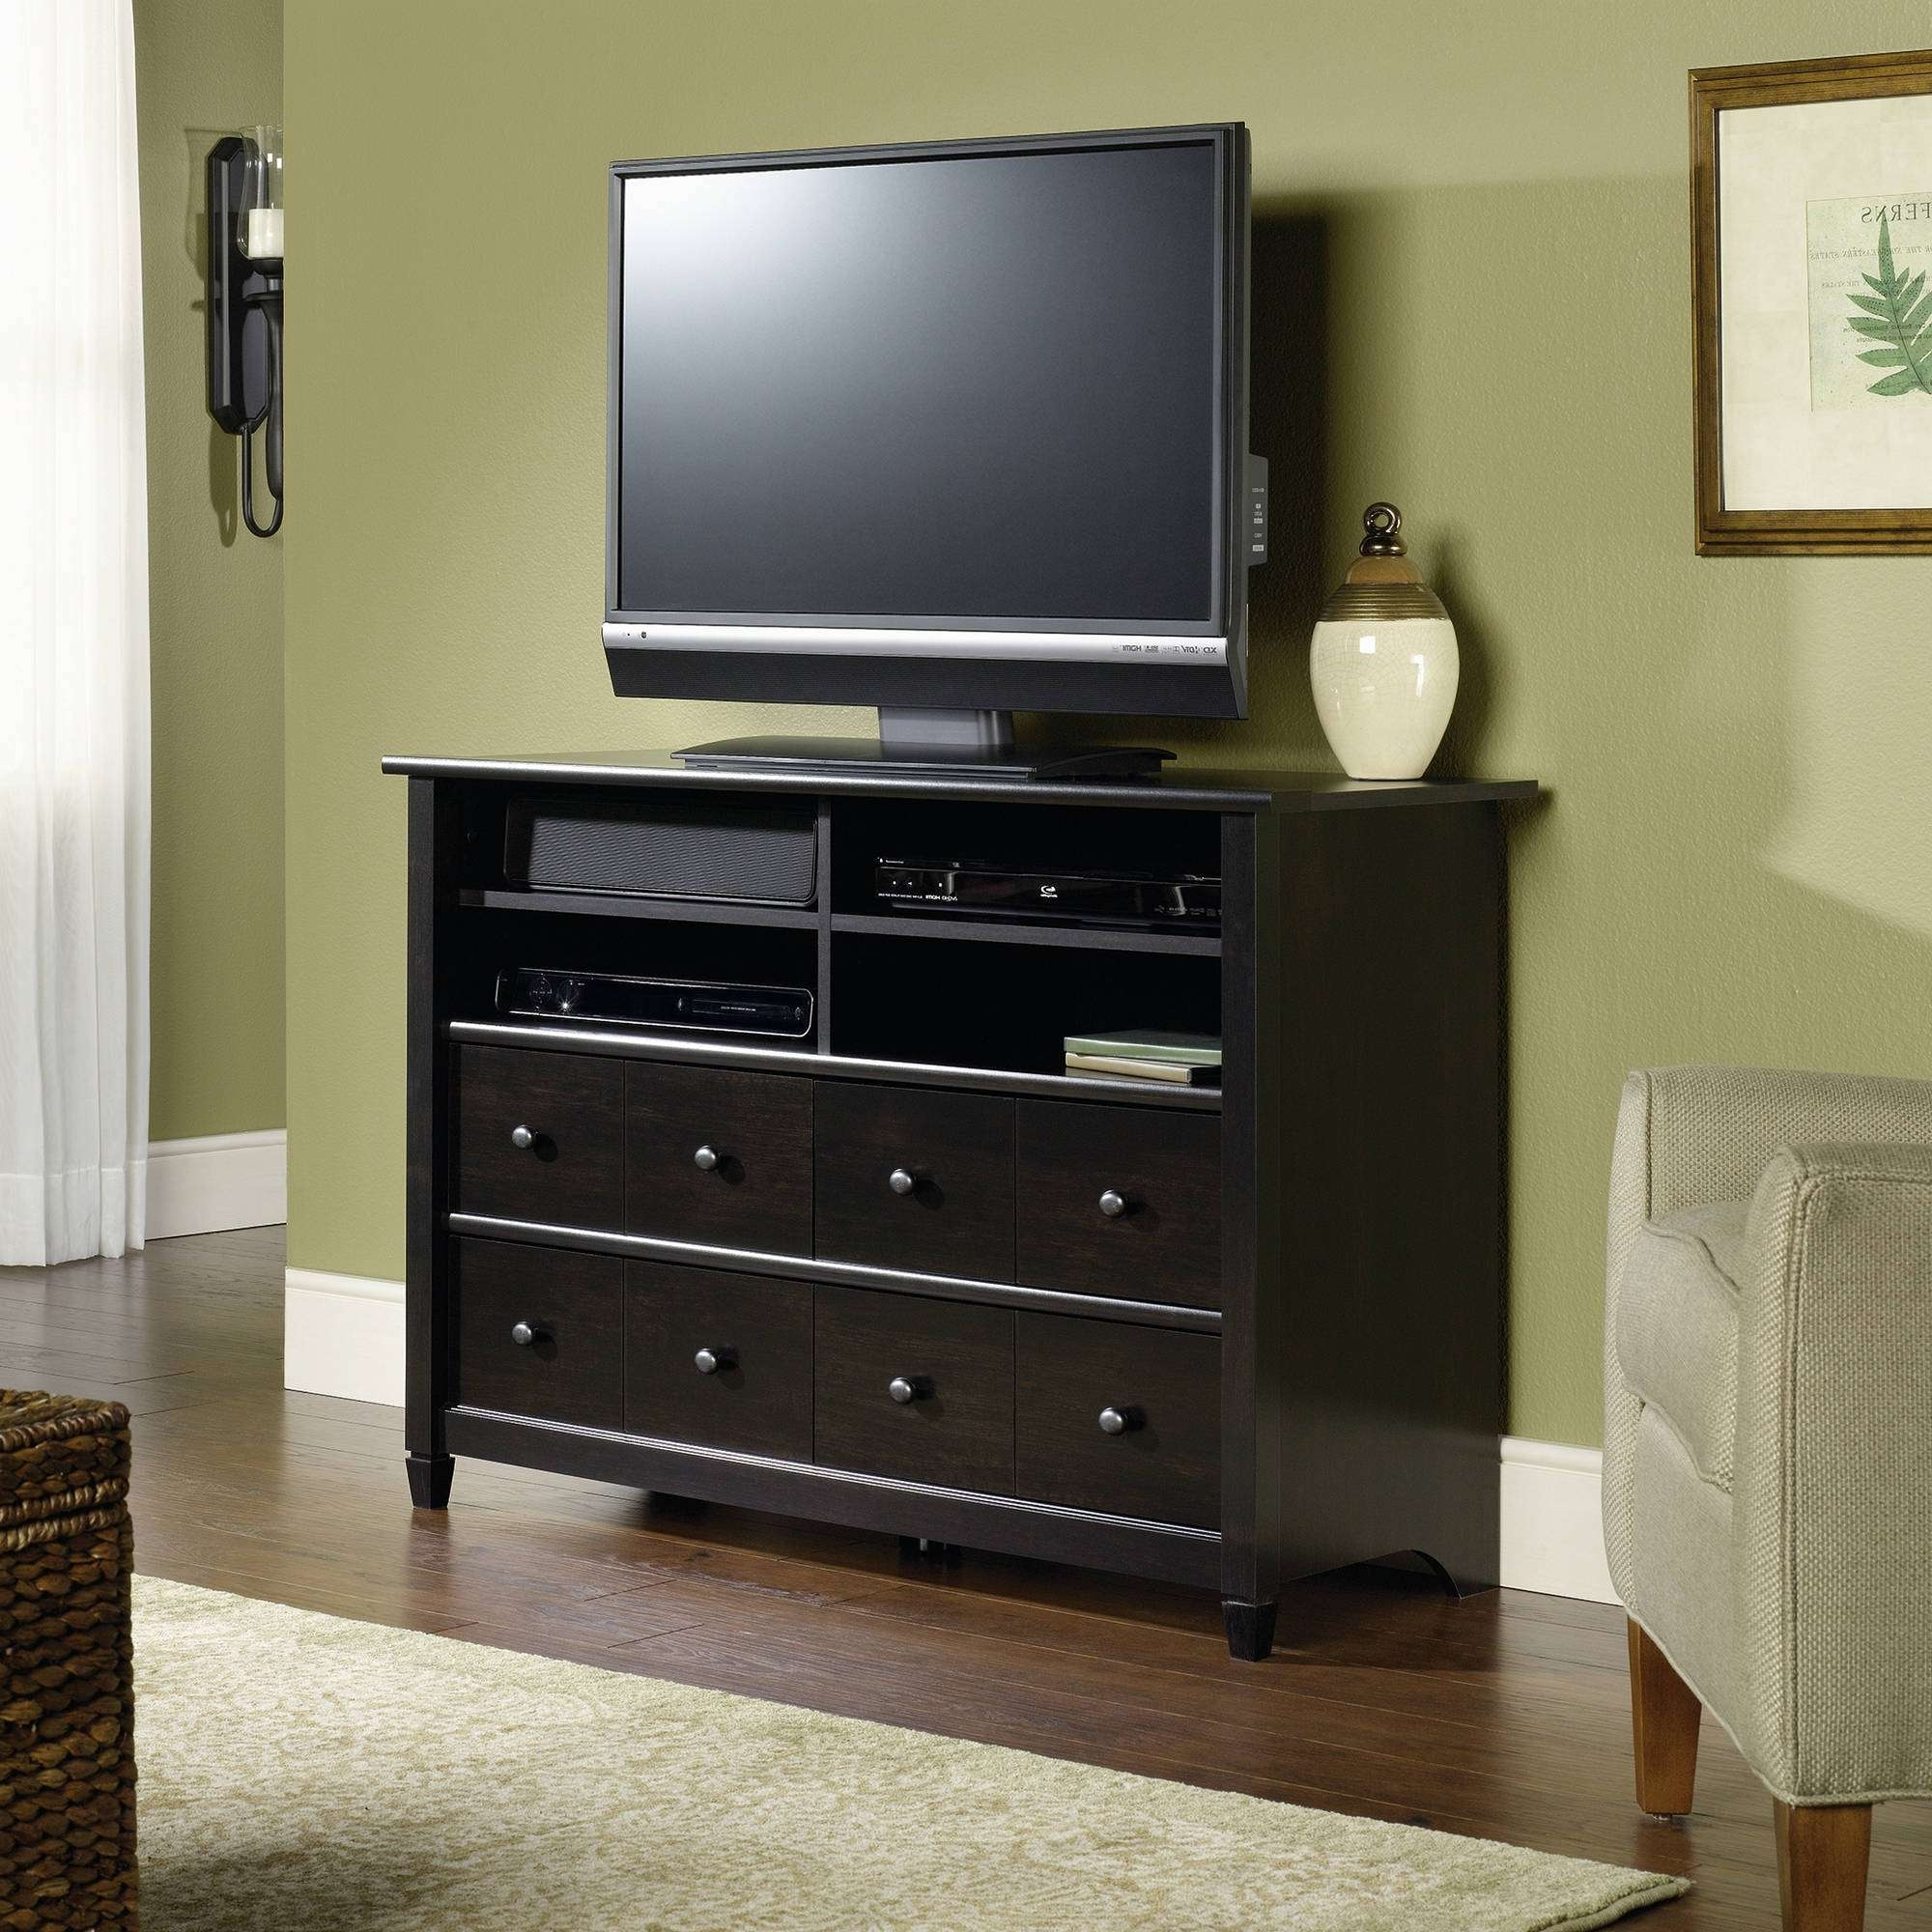 Tall Tv Stands With Drawers And Shelves • Shelves Inside Tv Stands With Drawers And Shelves (View 7 of 15)